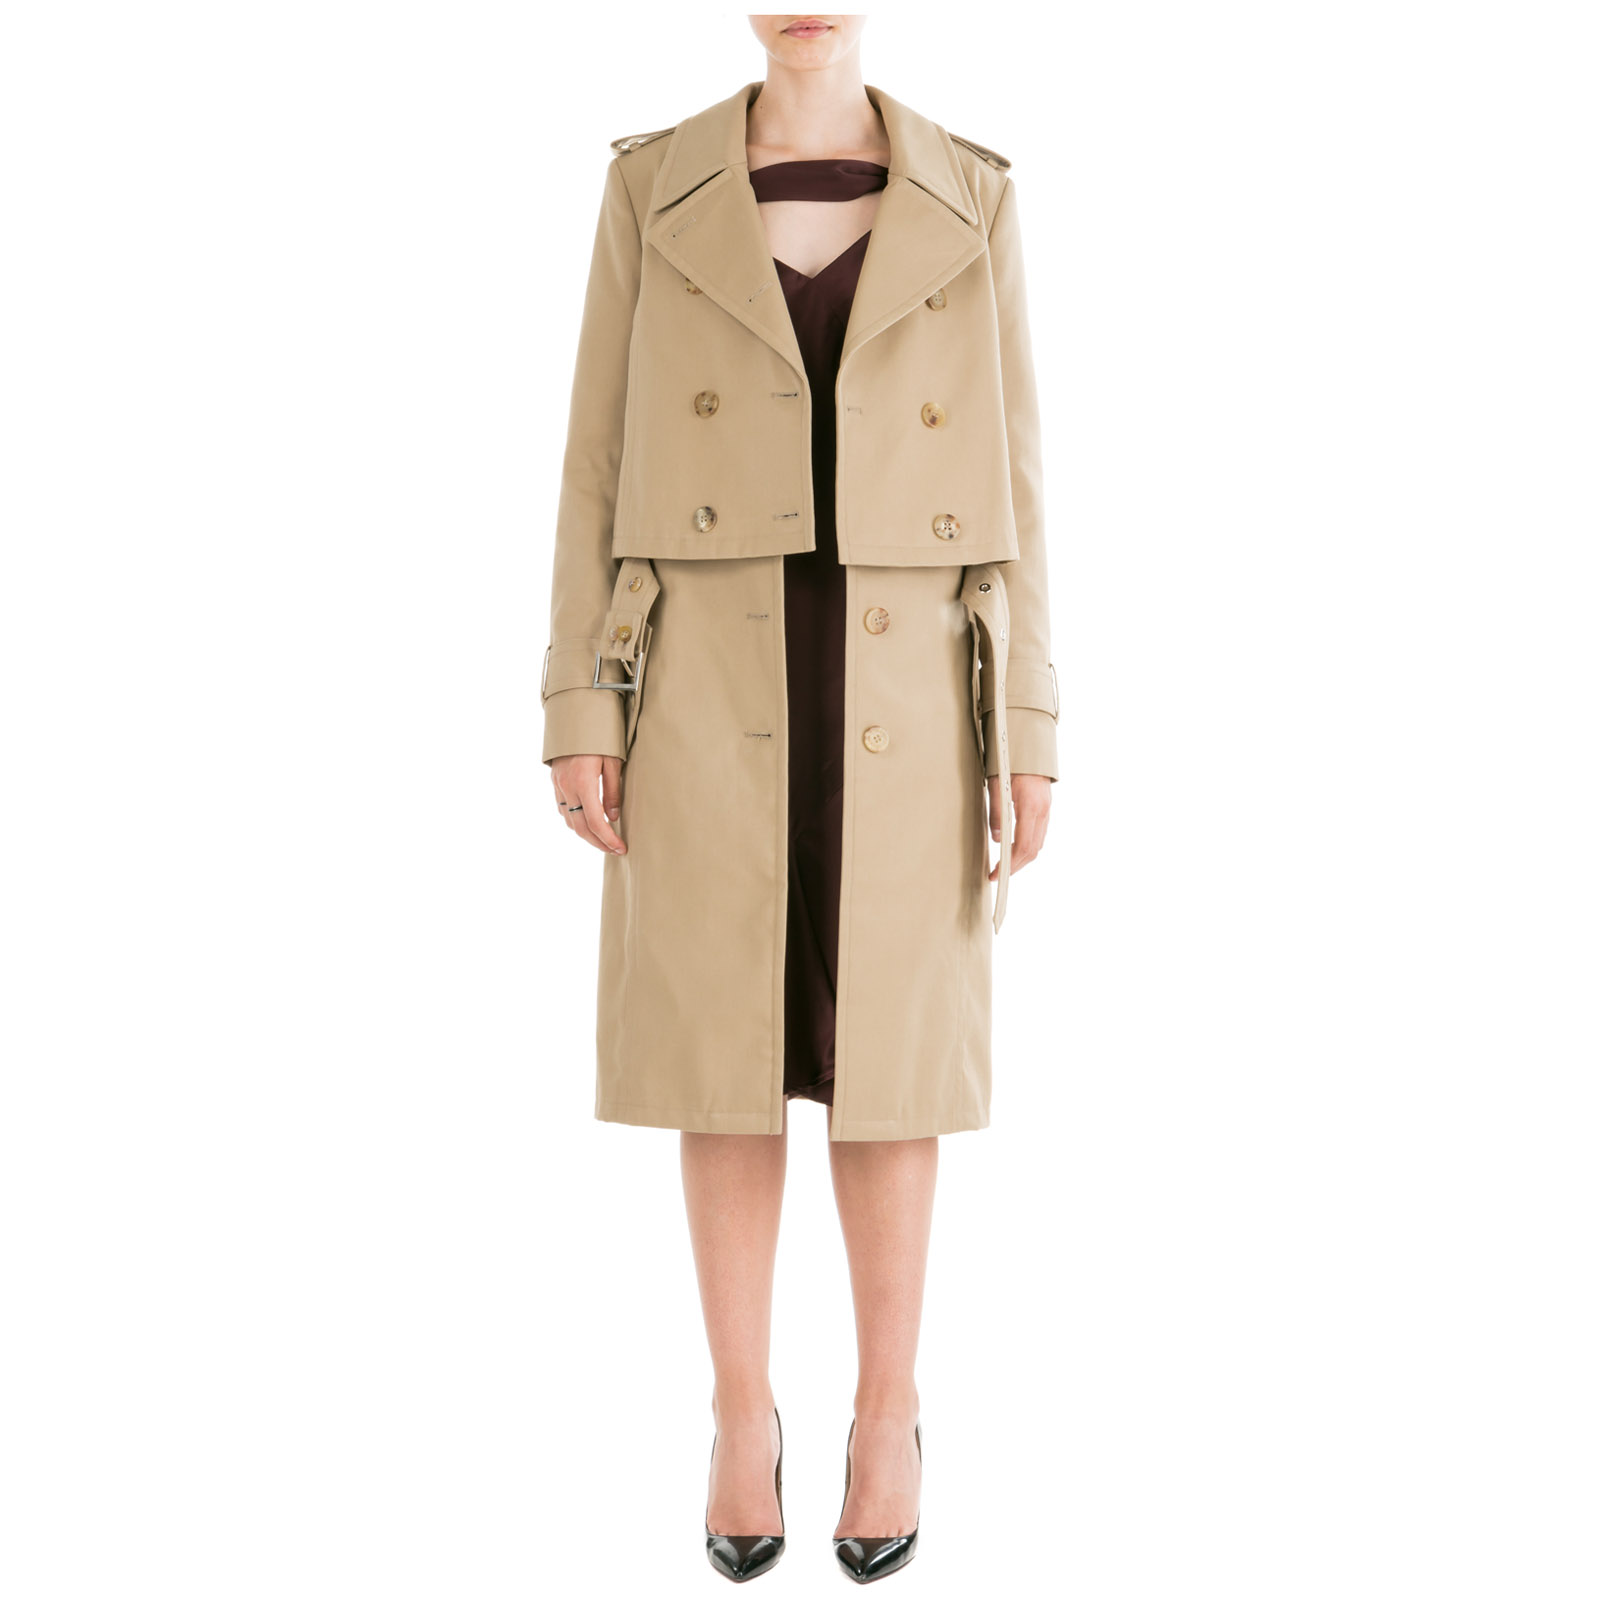 buy popular 2c667 e3923 Impermeabile trench donna